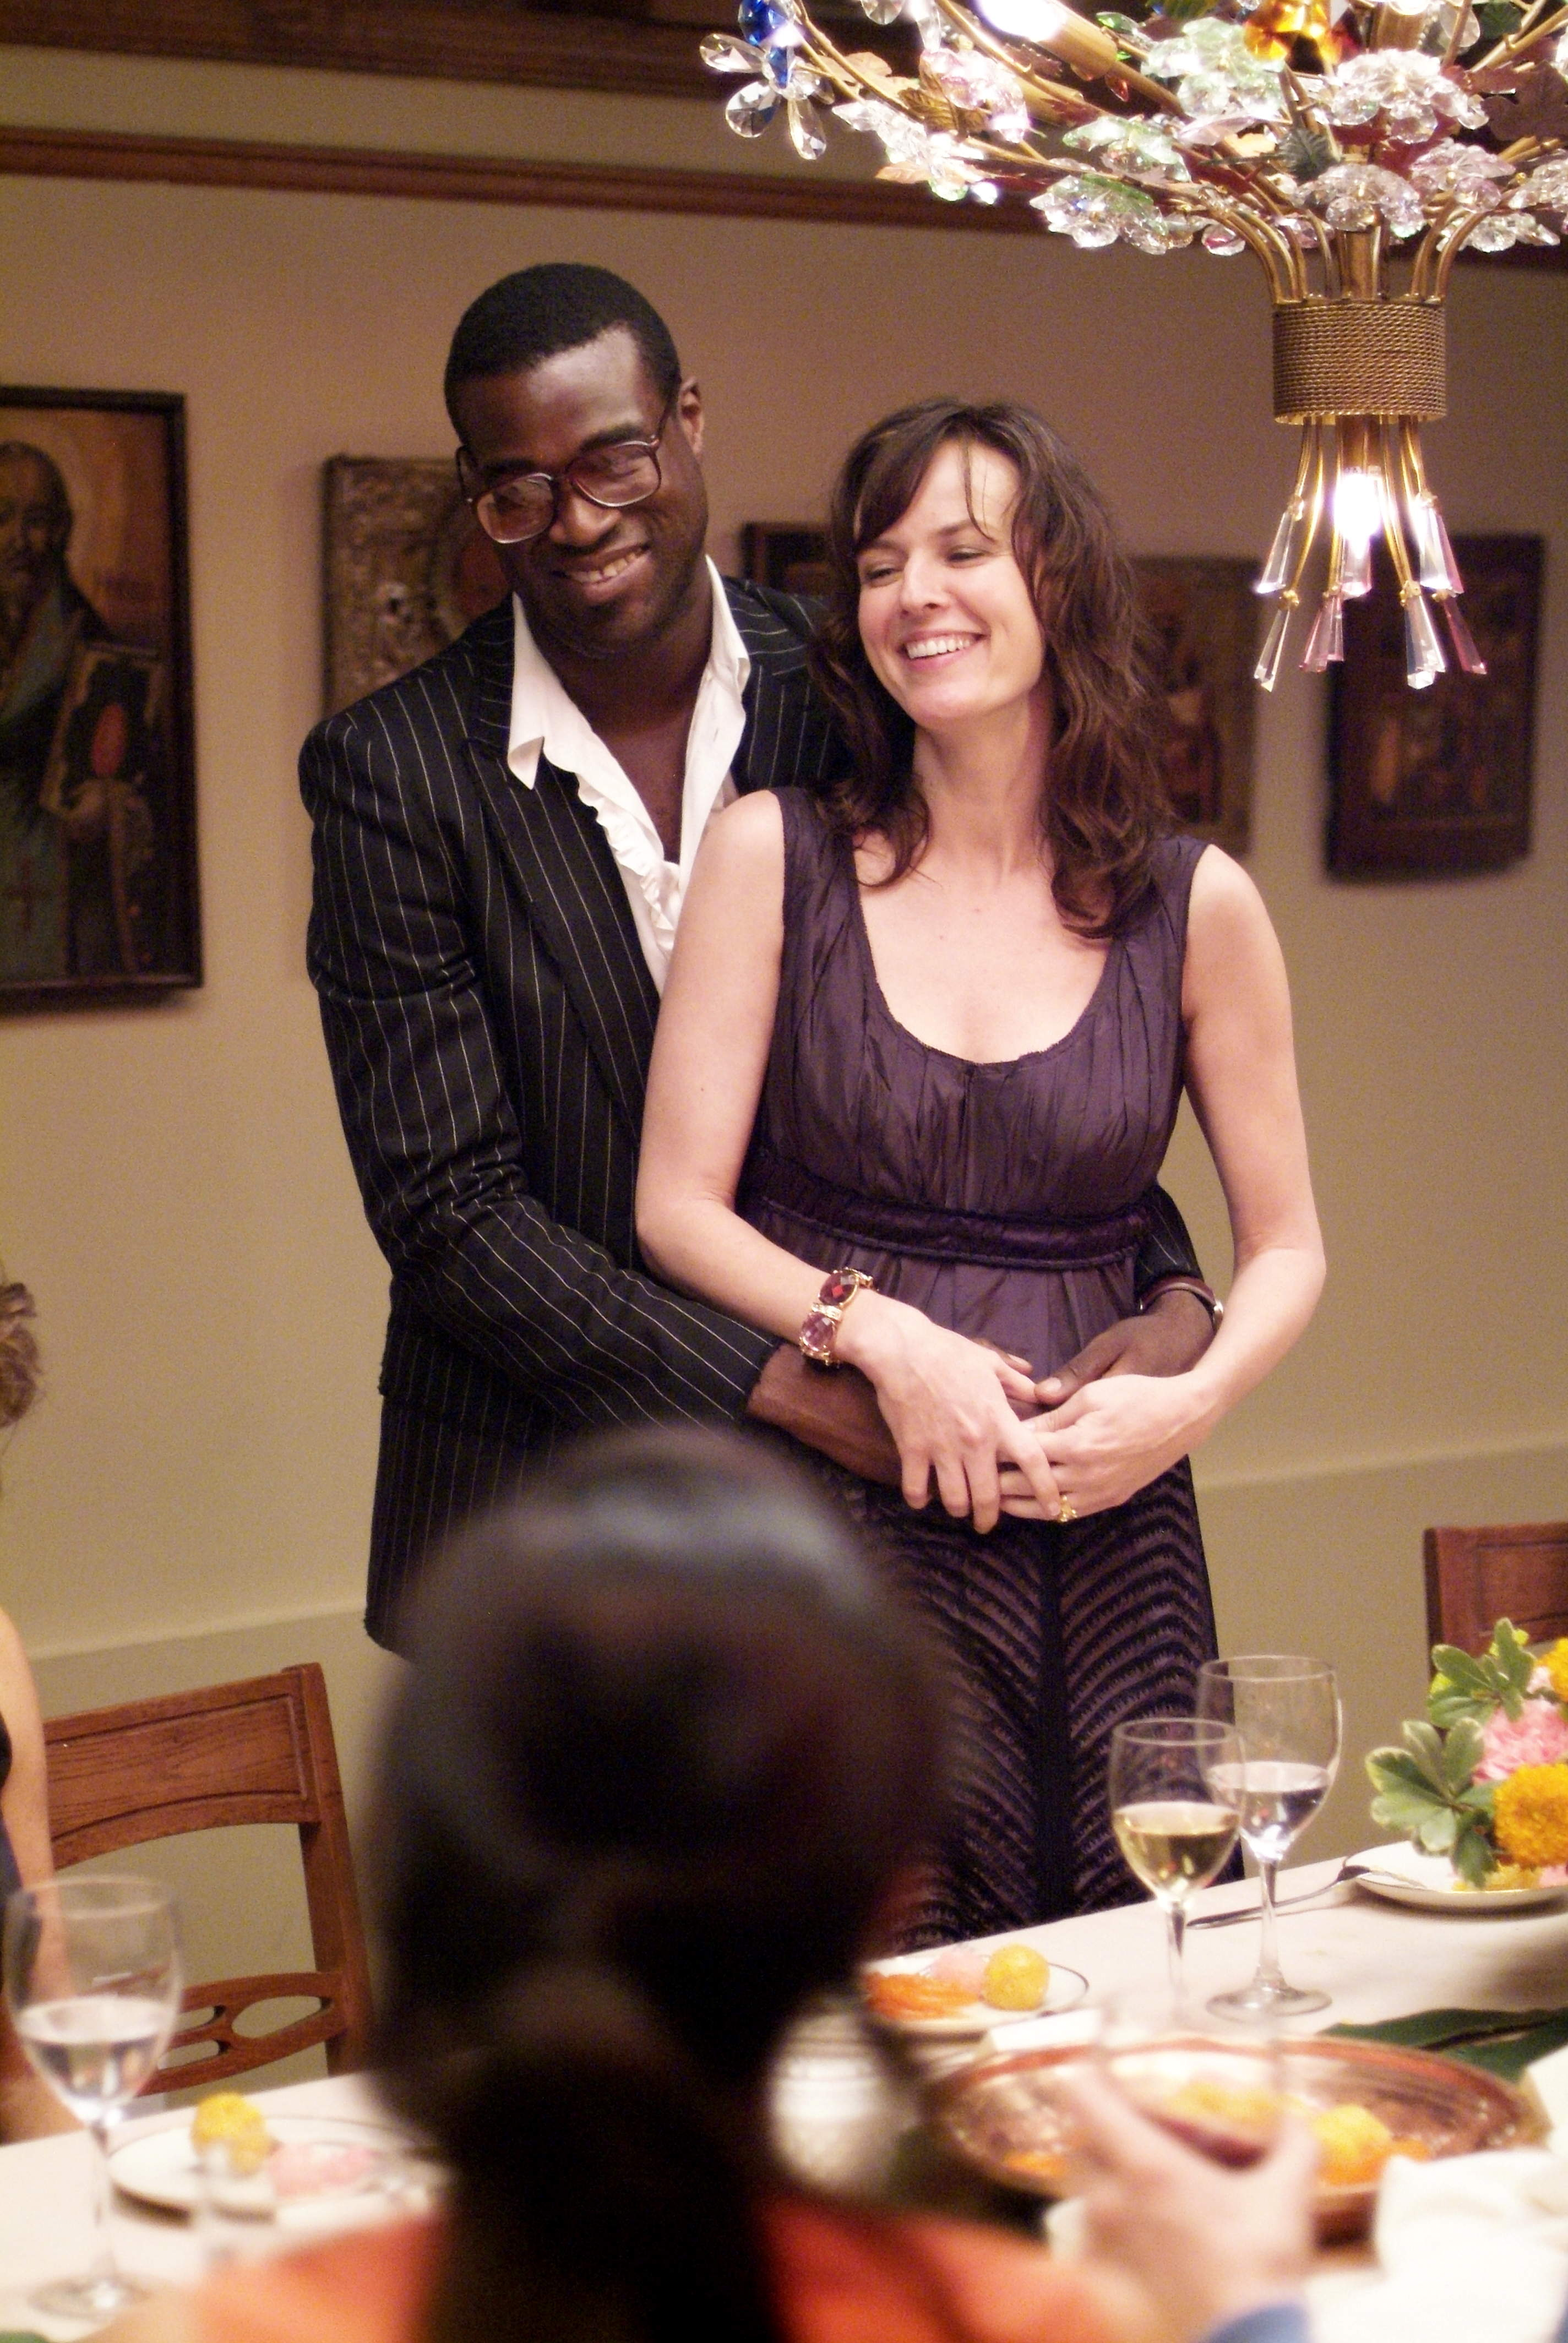 Tunde Adebimpe as Sidney and Rosemarie DeWitt as Rachel in Sony Pictures Classics' Rachel Getting Married (2008). Photo by Bob Vergara.